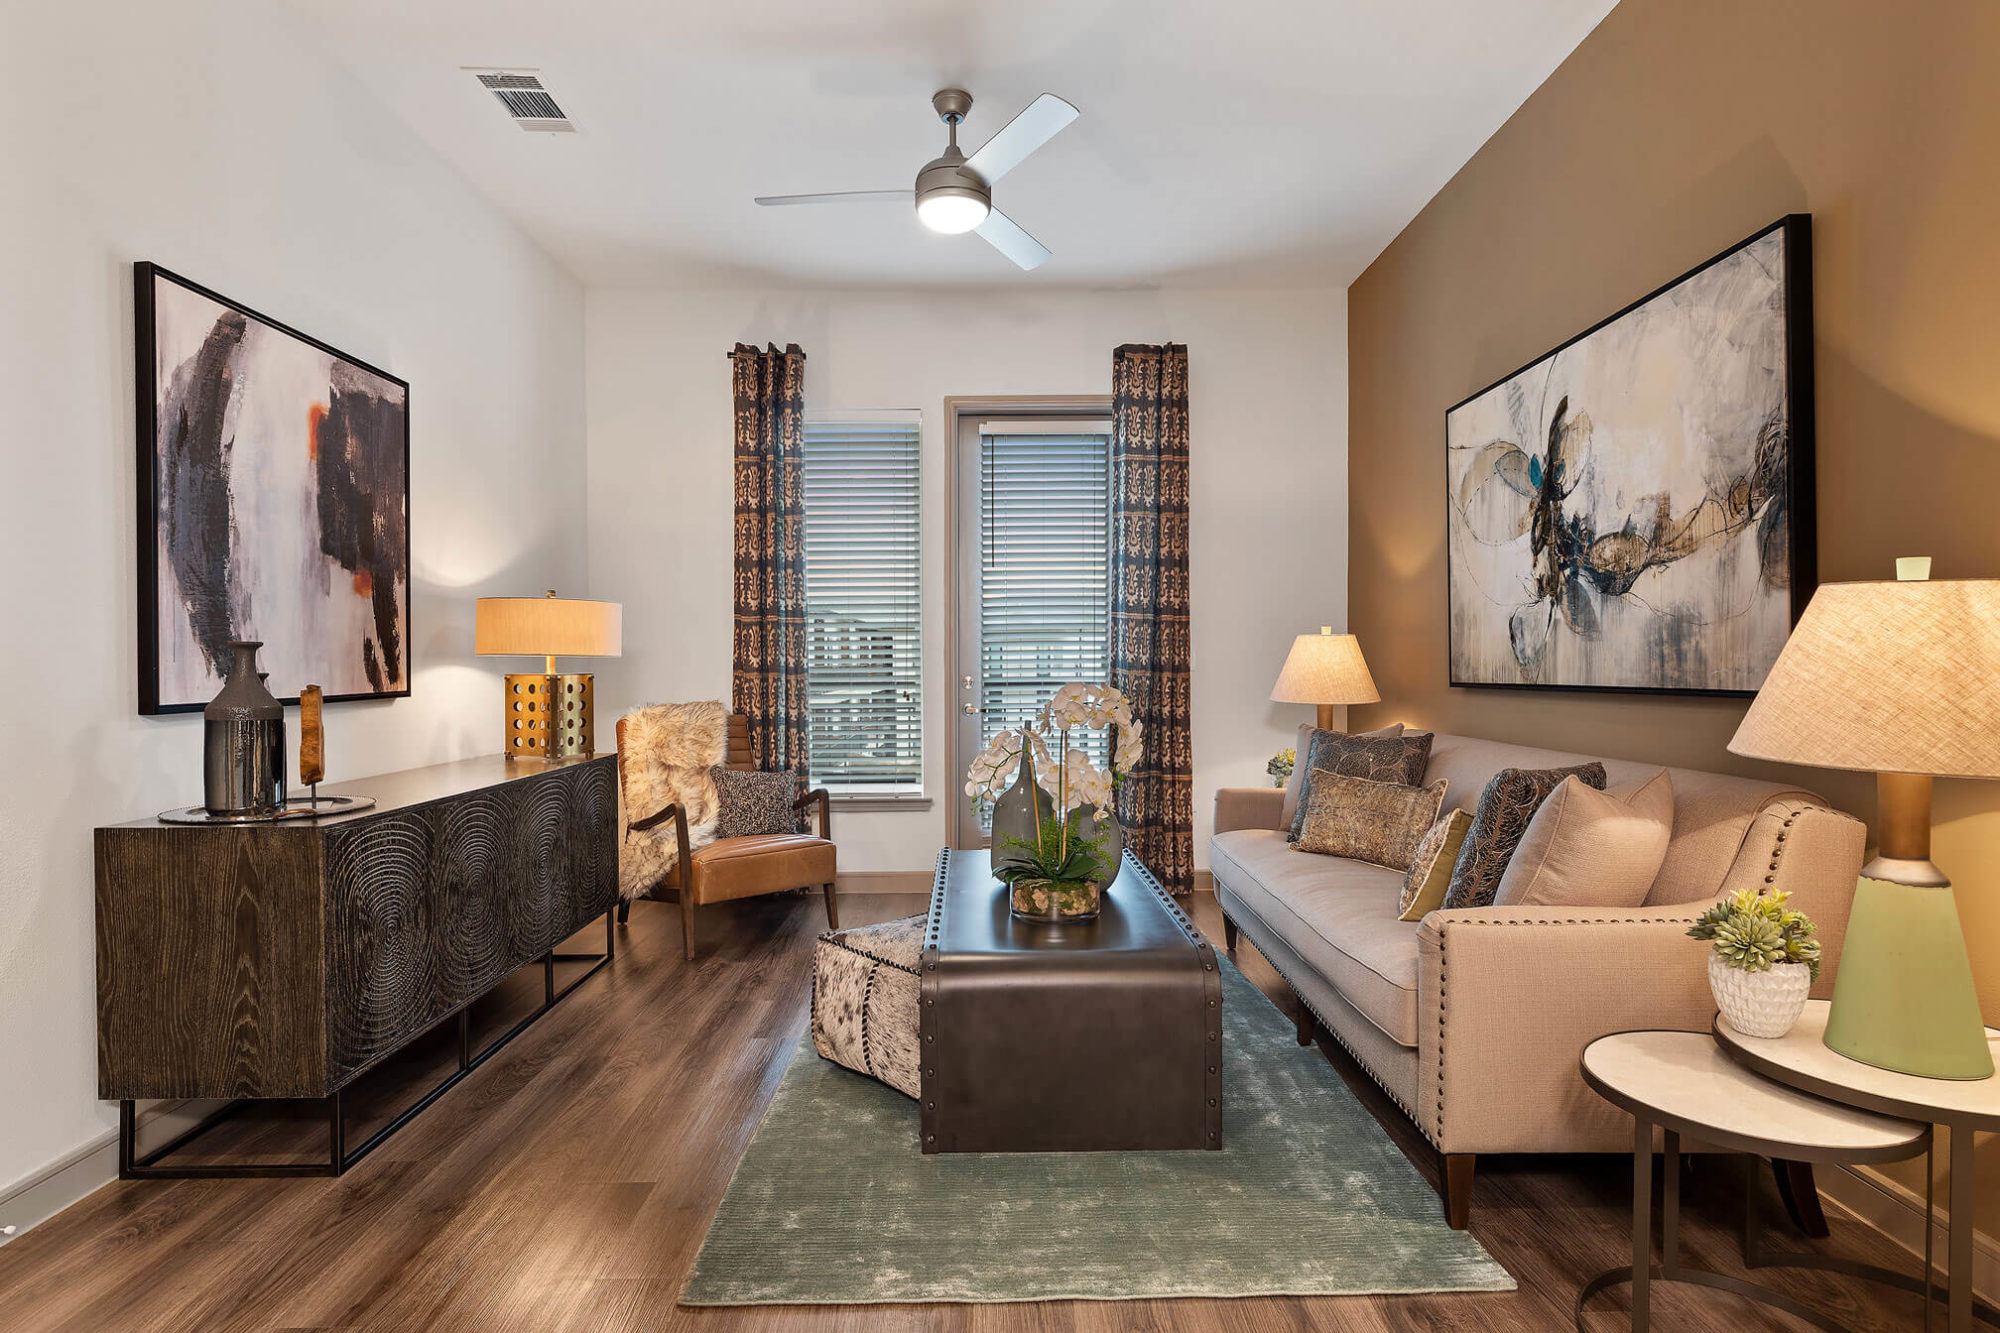 Living room with door to the patio/balcony, wood-like floors, ceiling fan, bronze accent wall and modern furniture